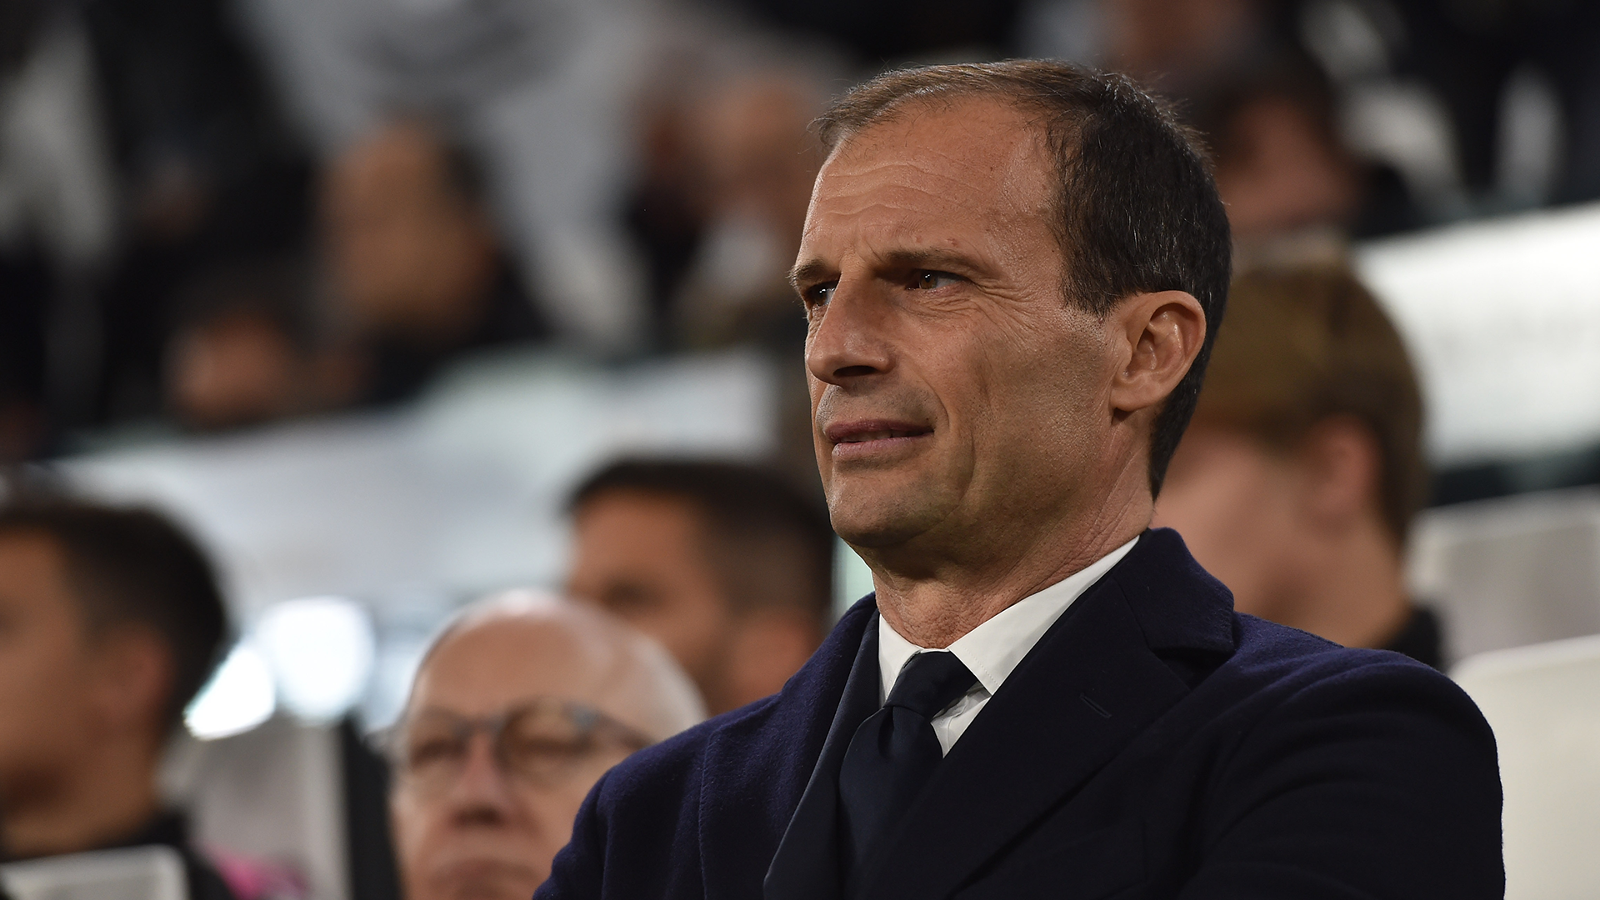 'If I was Allegri, I'd go to Manchester United': Fabio Capello urges former Juventus boss to hold out for shot at Old Trafford - Bóng Đá